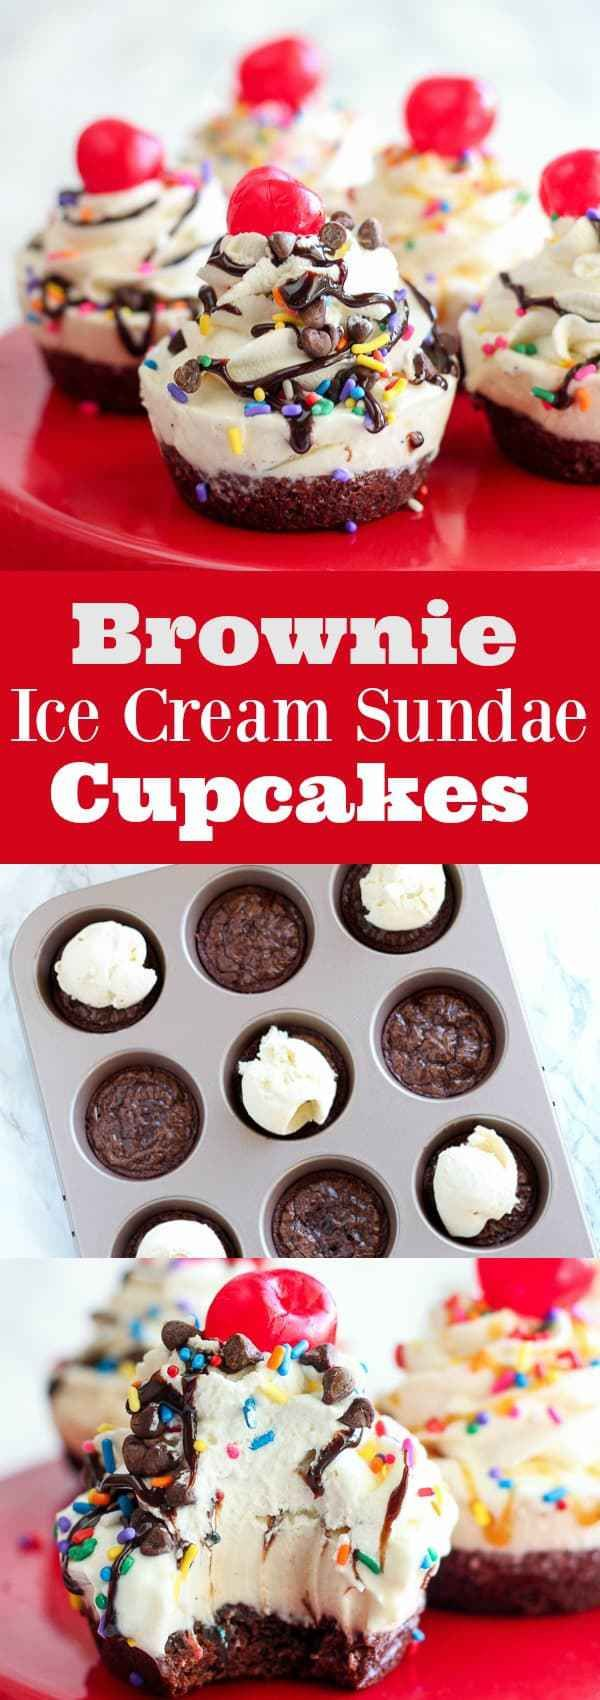 Brownie Ice Cream Sundae Cupcakes - Fudgy brownies topped with vanilla ice cream, whipped cream, hot fudge, caramel, sprinkles, and more! These fun individual desserts are made in a muffin tin.